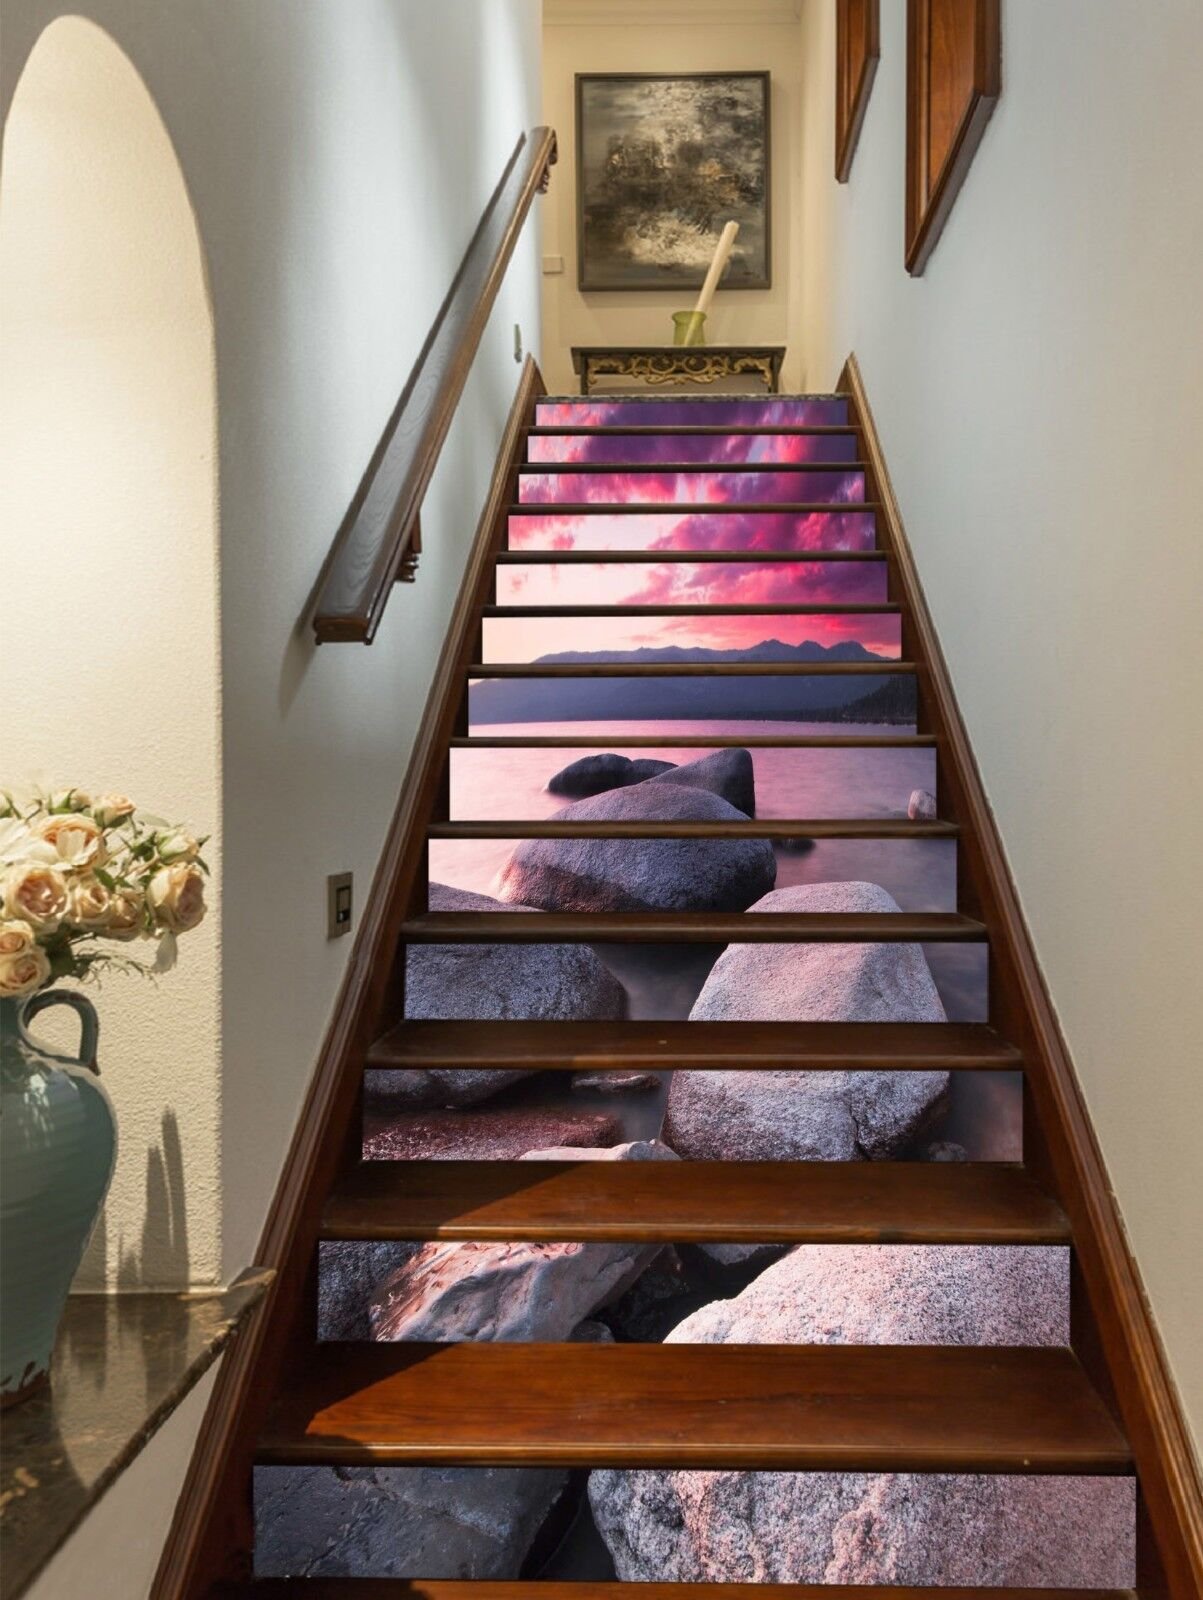 3D Sky stone 332 Stair Risers Decoration Photo Mural Vinyl Decal Wallpaper UK